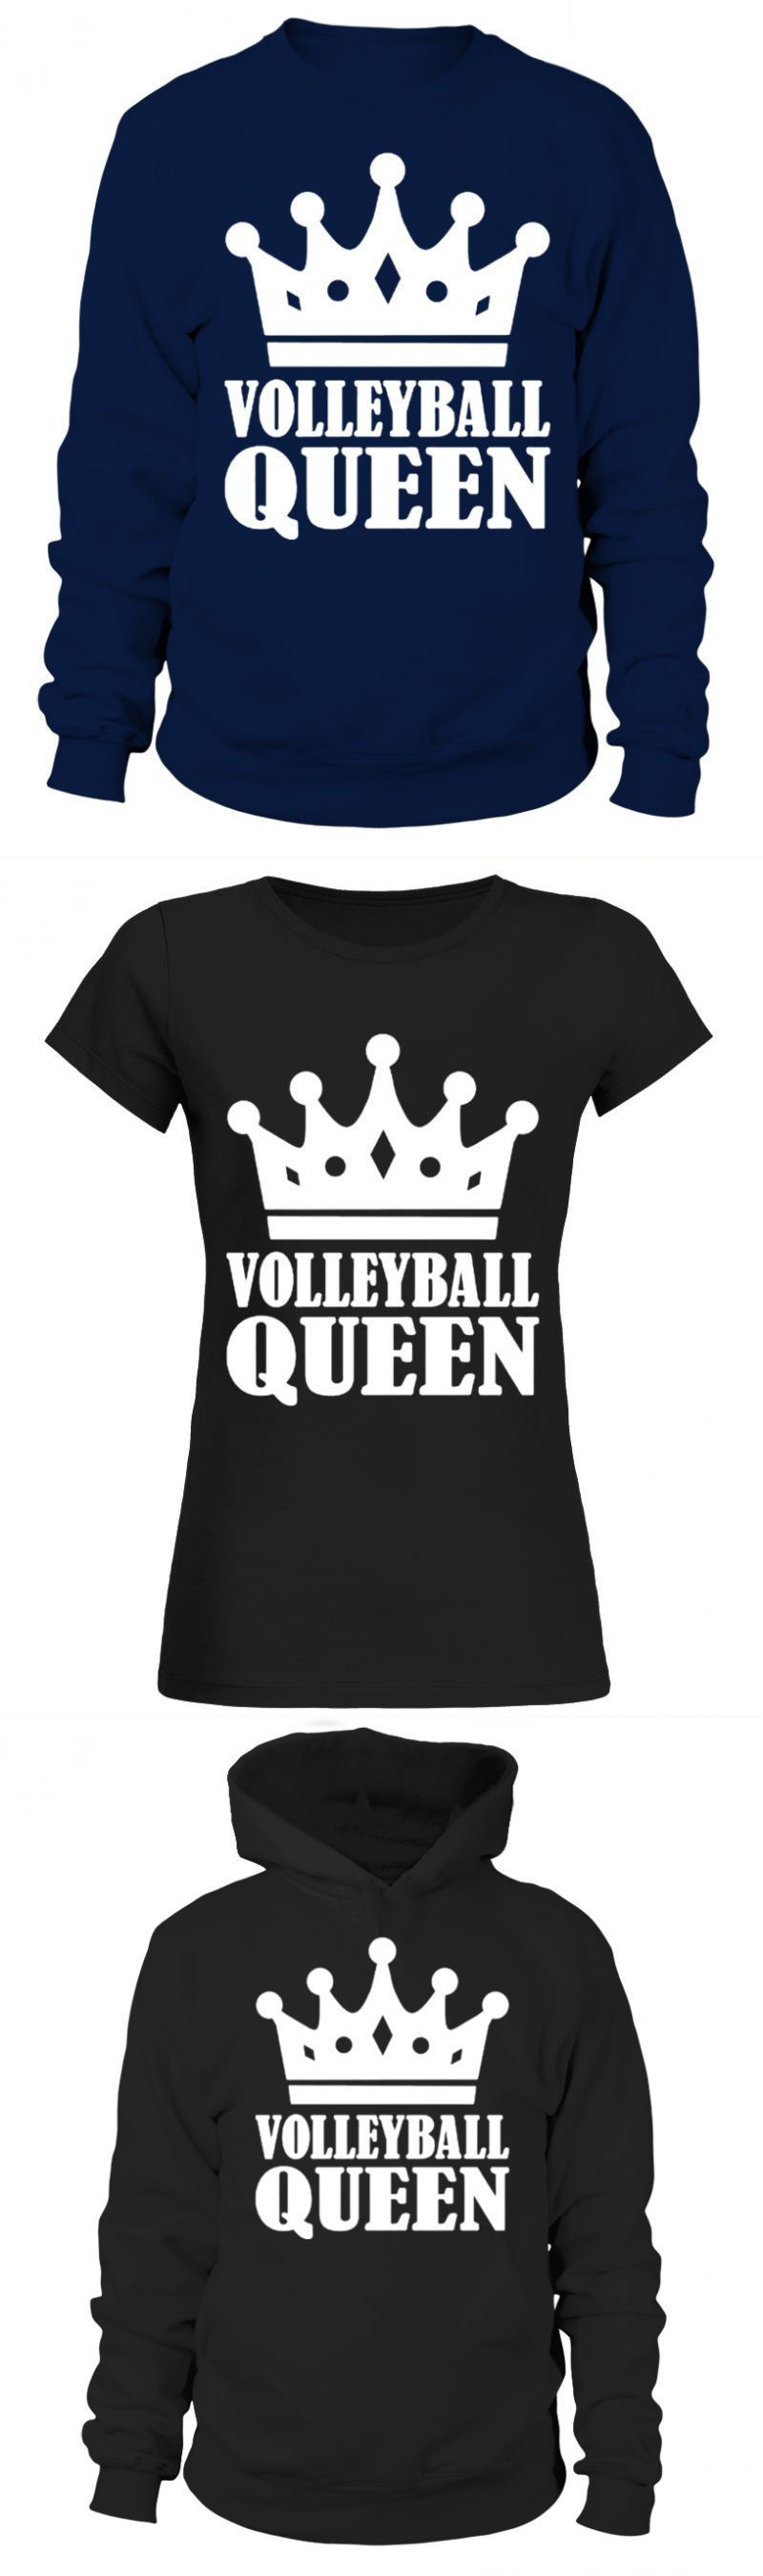 Custom Volleyball Clothing Spirit Wear Practice Gear Tournament Shirts Volleyball Designs Cute Volleyball Shirts Volleyball Shirt Designs